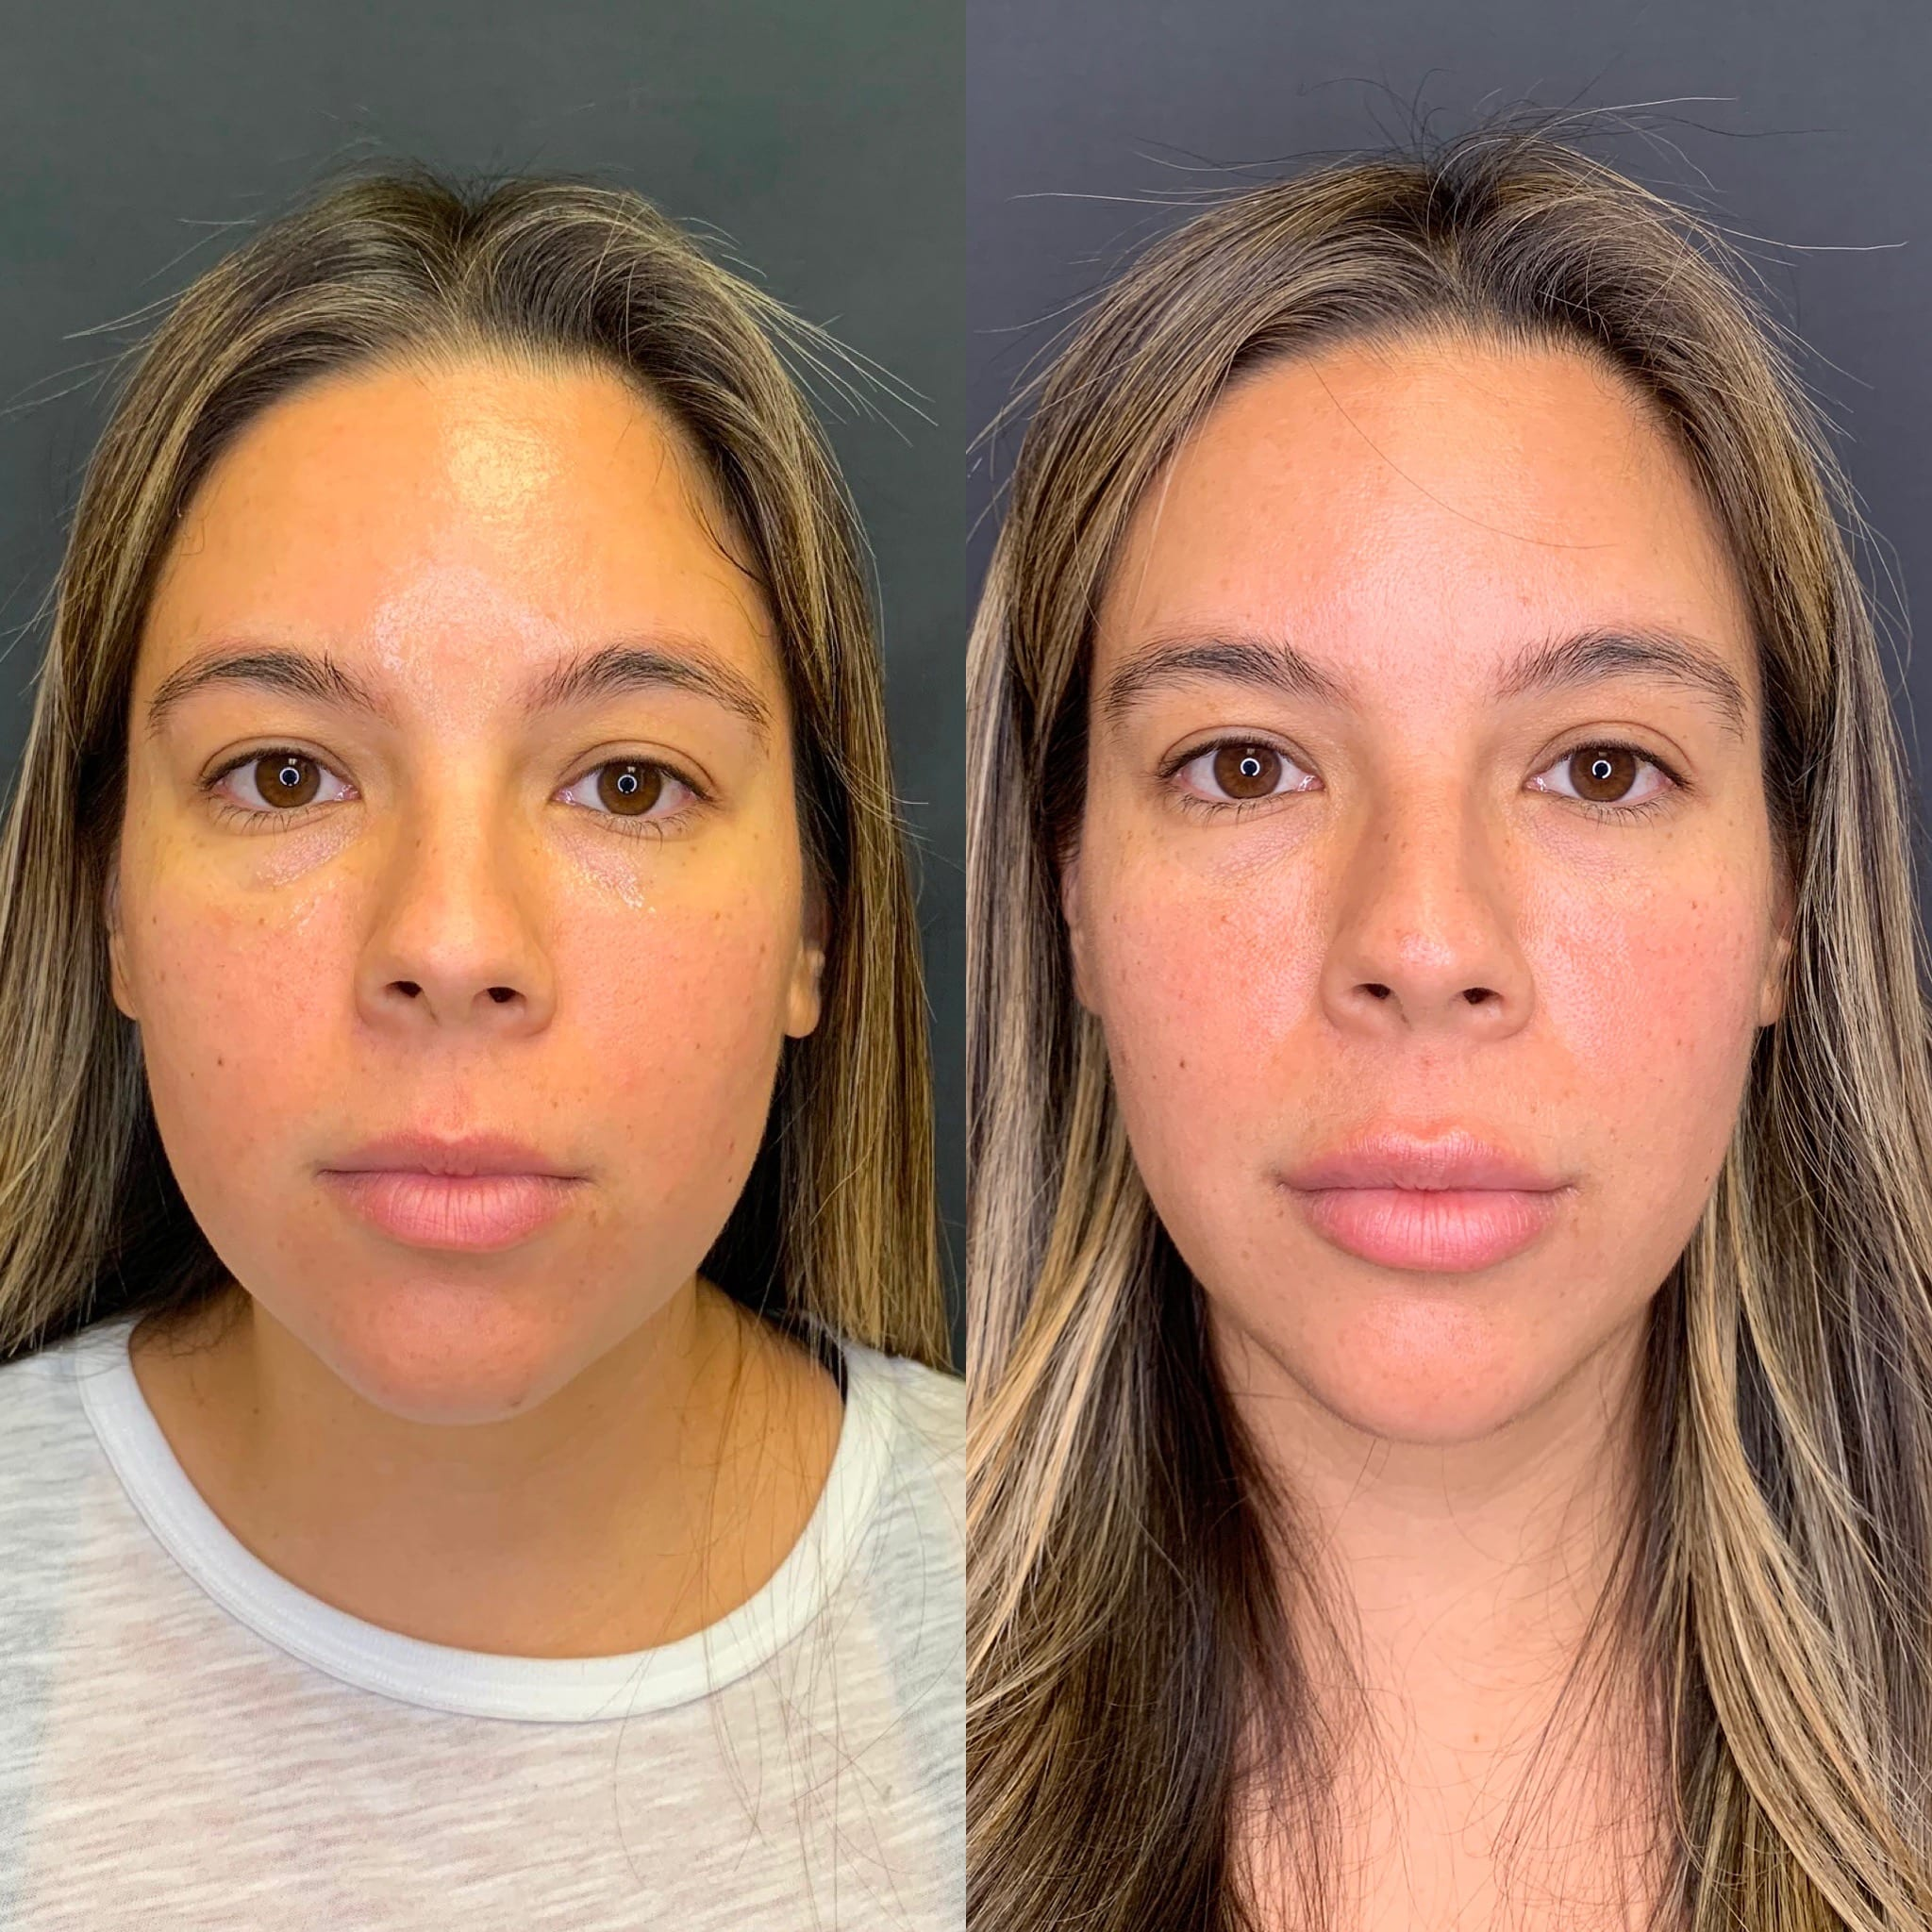 30 y/o Hispanic F 3 months after receiving 40 units of botox to her masseters for jawline slimming.